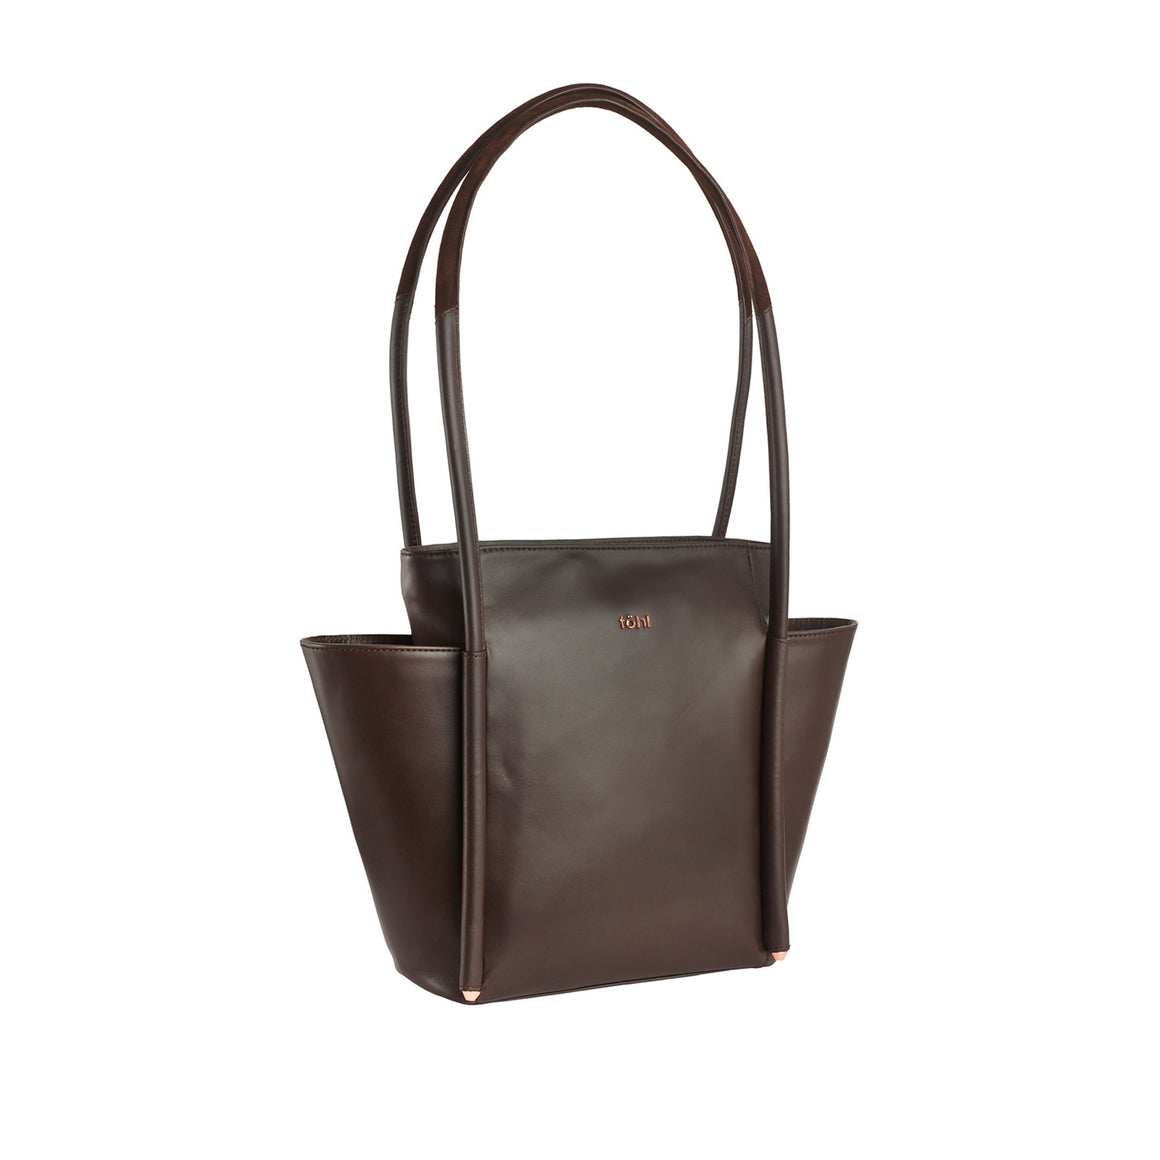 SB 0020 - TOHL PERRY WOMEN'S SHOPPER - MOCHA